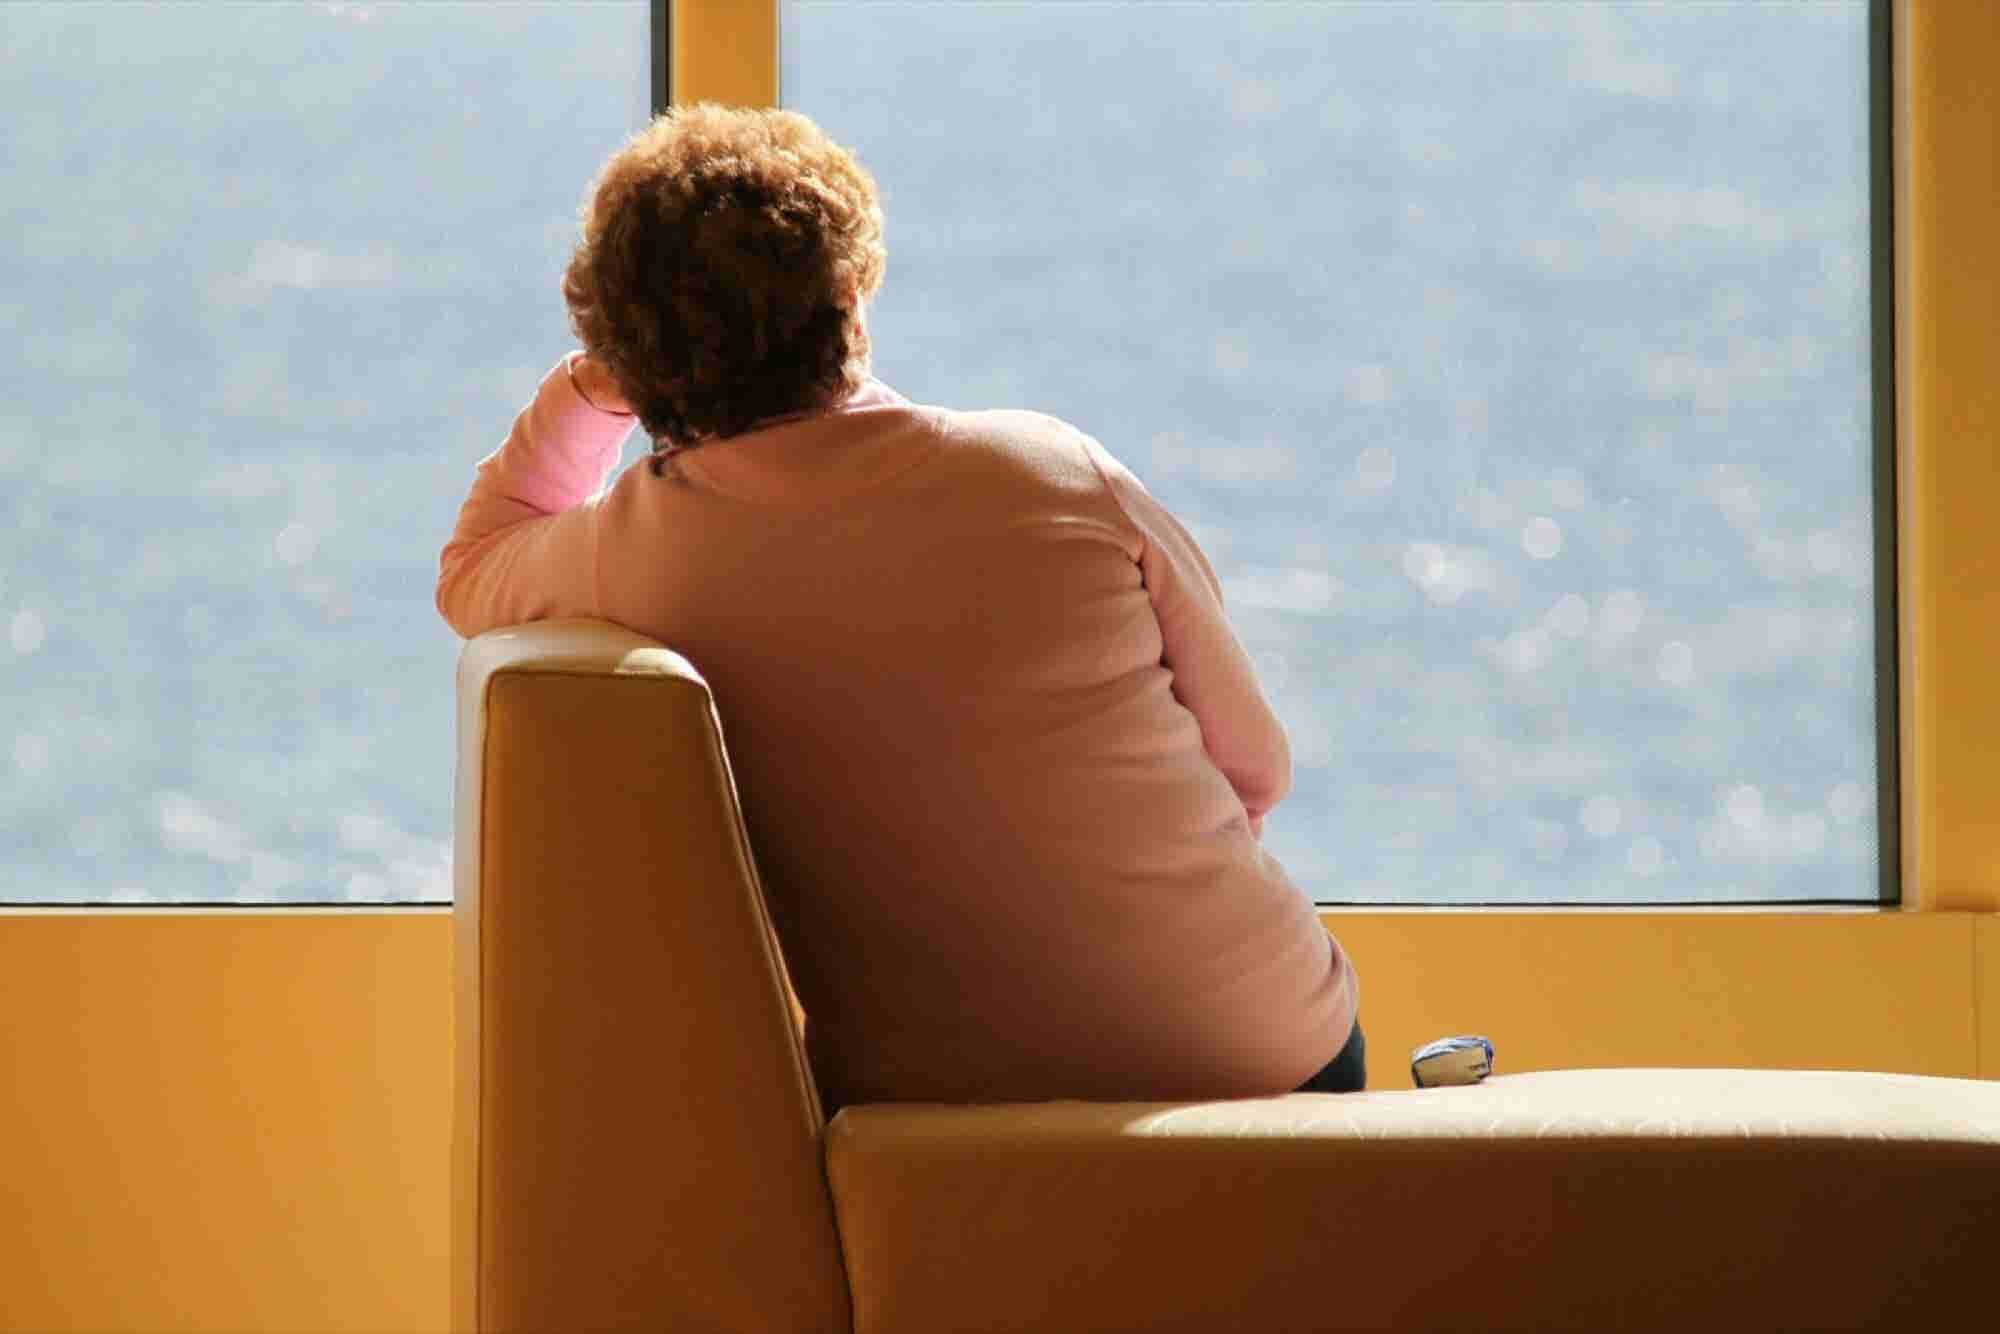 Fear, Heartache and Tragedy Can Actually Be Big Motivators